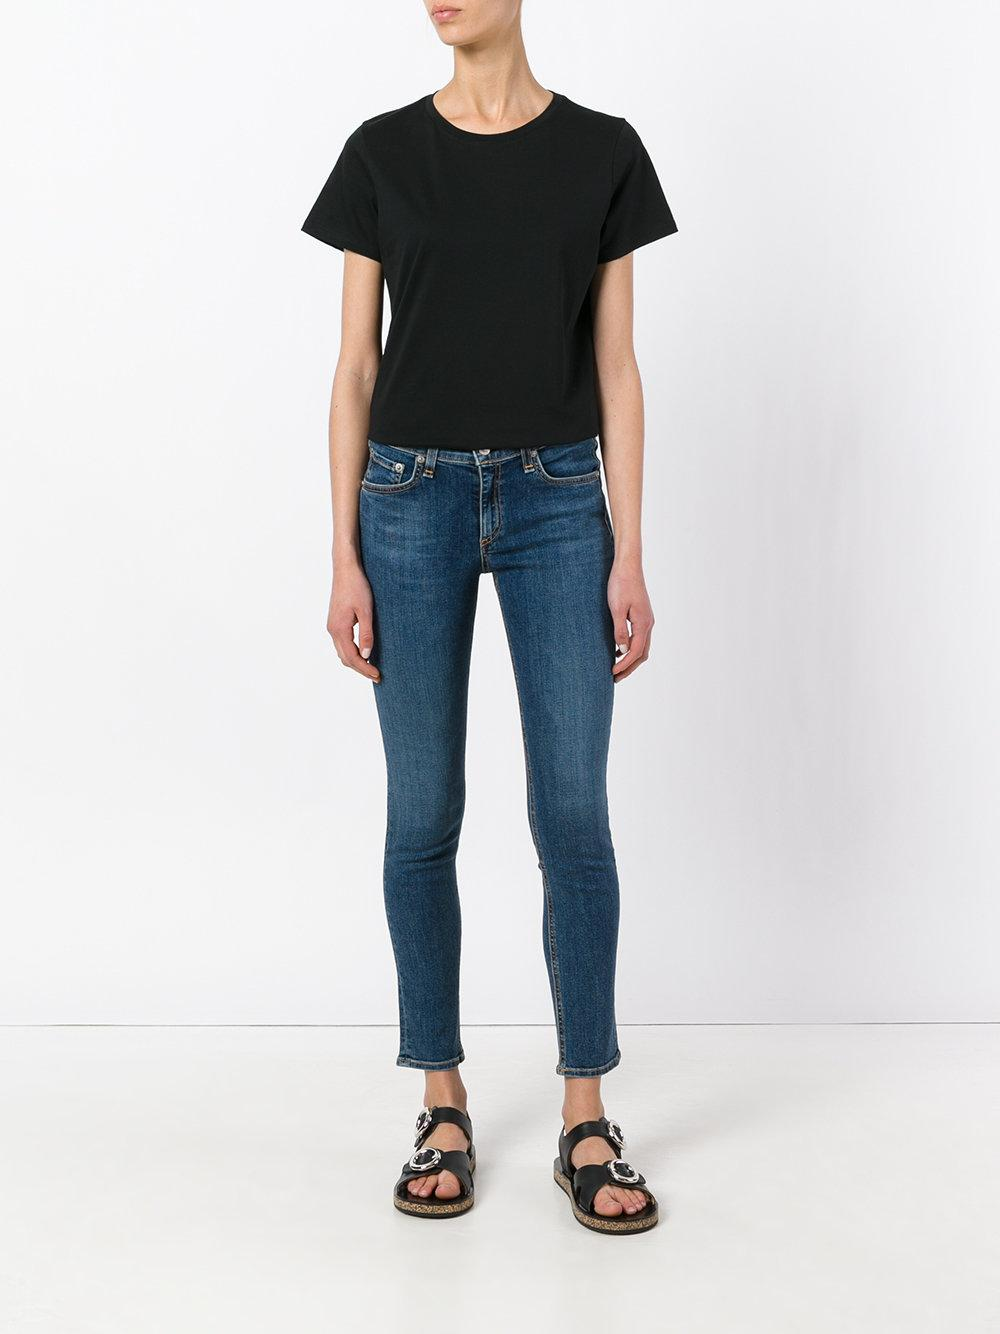 Lyst vince round neck t shirt in black for Vince tee shirts sale